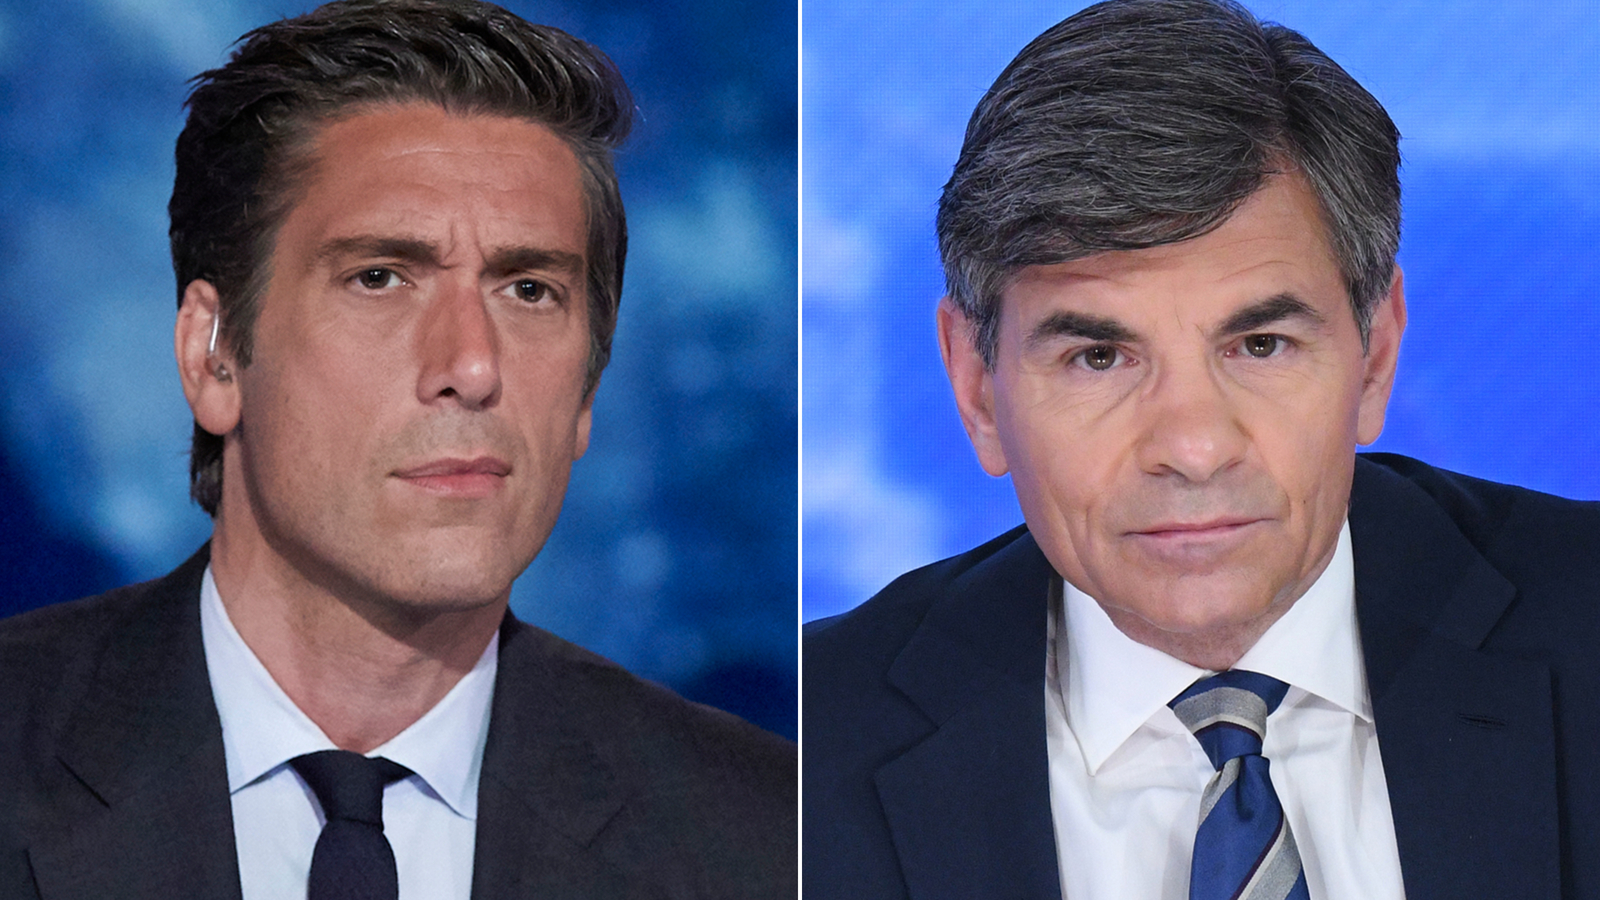 David Muir's new role at ABC News leads to drama with George Stephanopoulos and a visit from Bob Iger